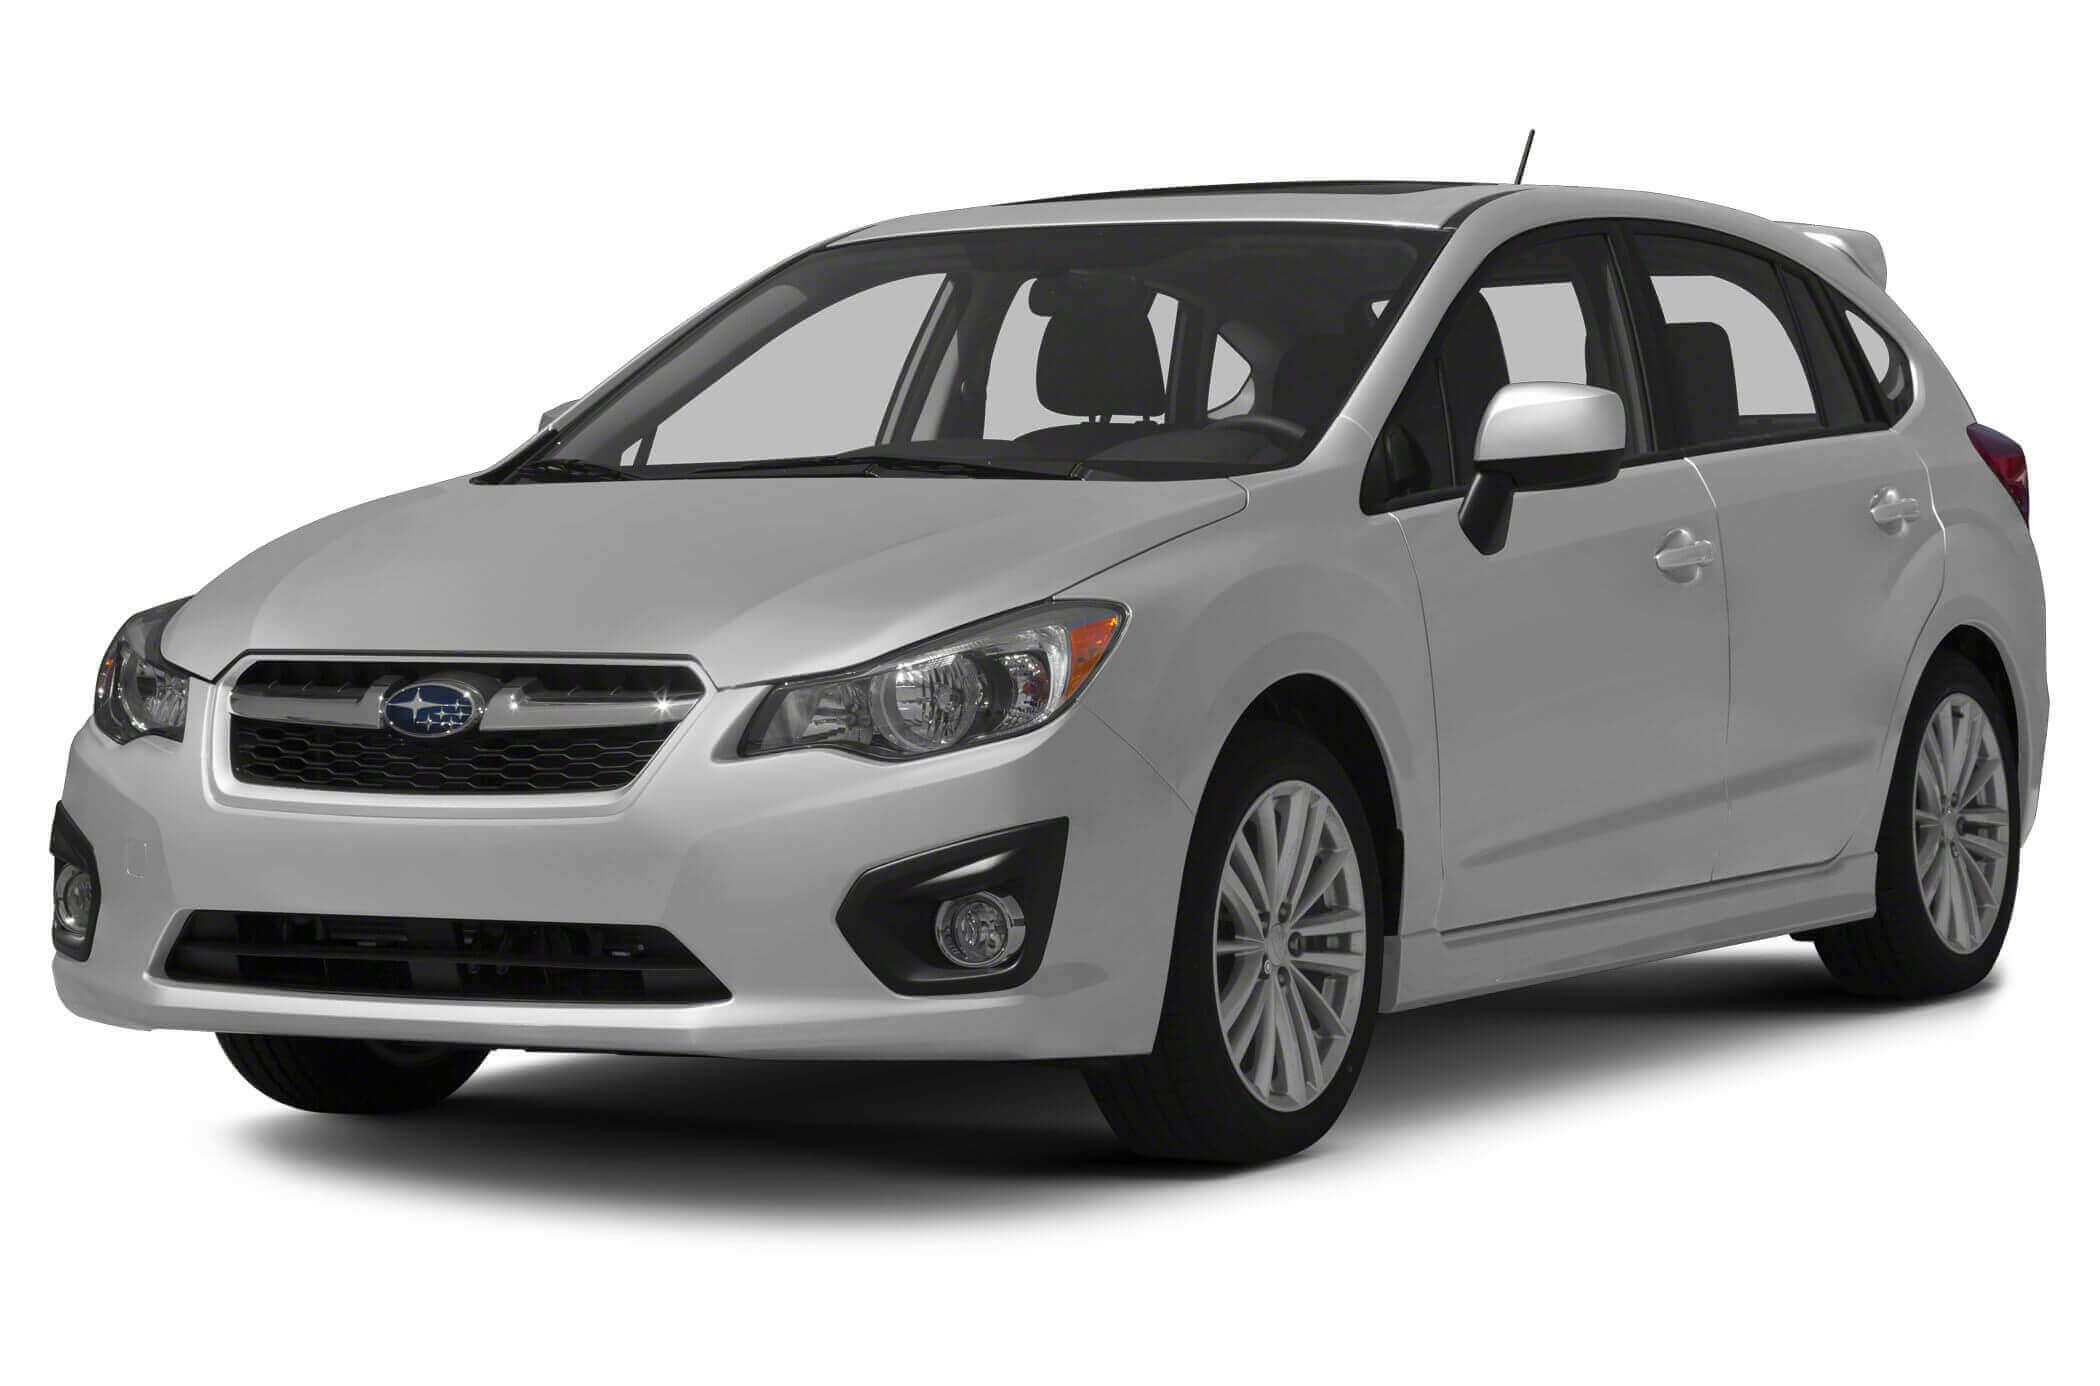 Subaru impreza launched in 2013